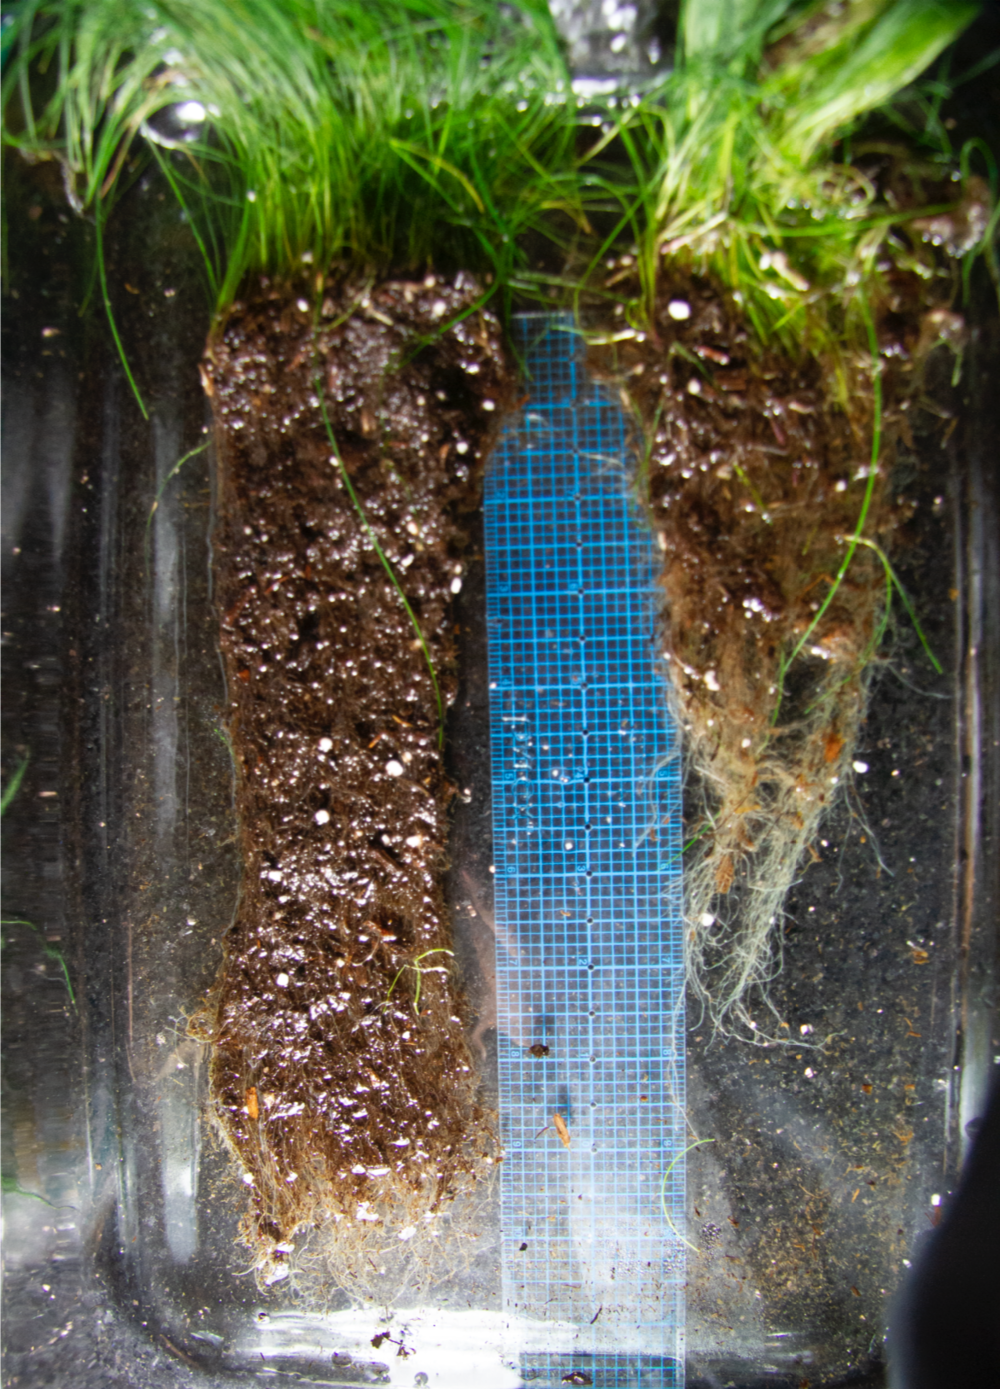 LiveTurf™ vs Control Results - This is an example of LiveTurf™ treated grass on the left growing significantly longer and denser roots allowing it to better withstand the heat of the season through increased water and nutrient uptake.